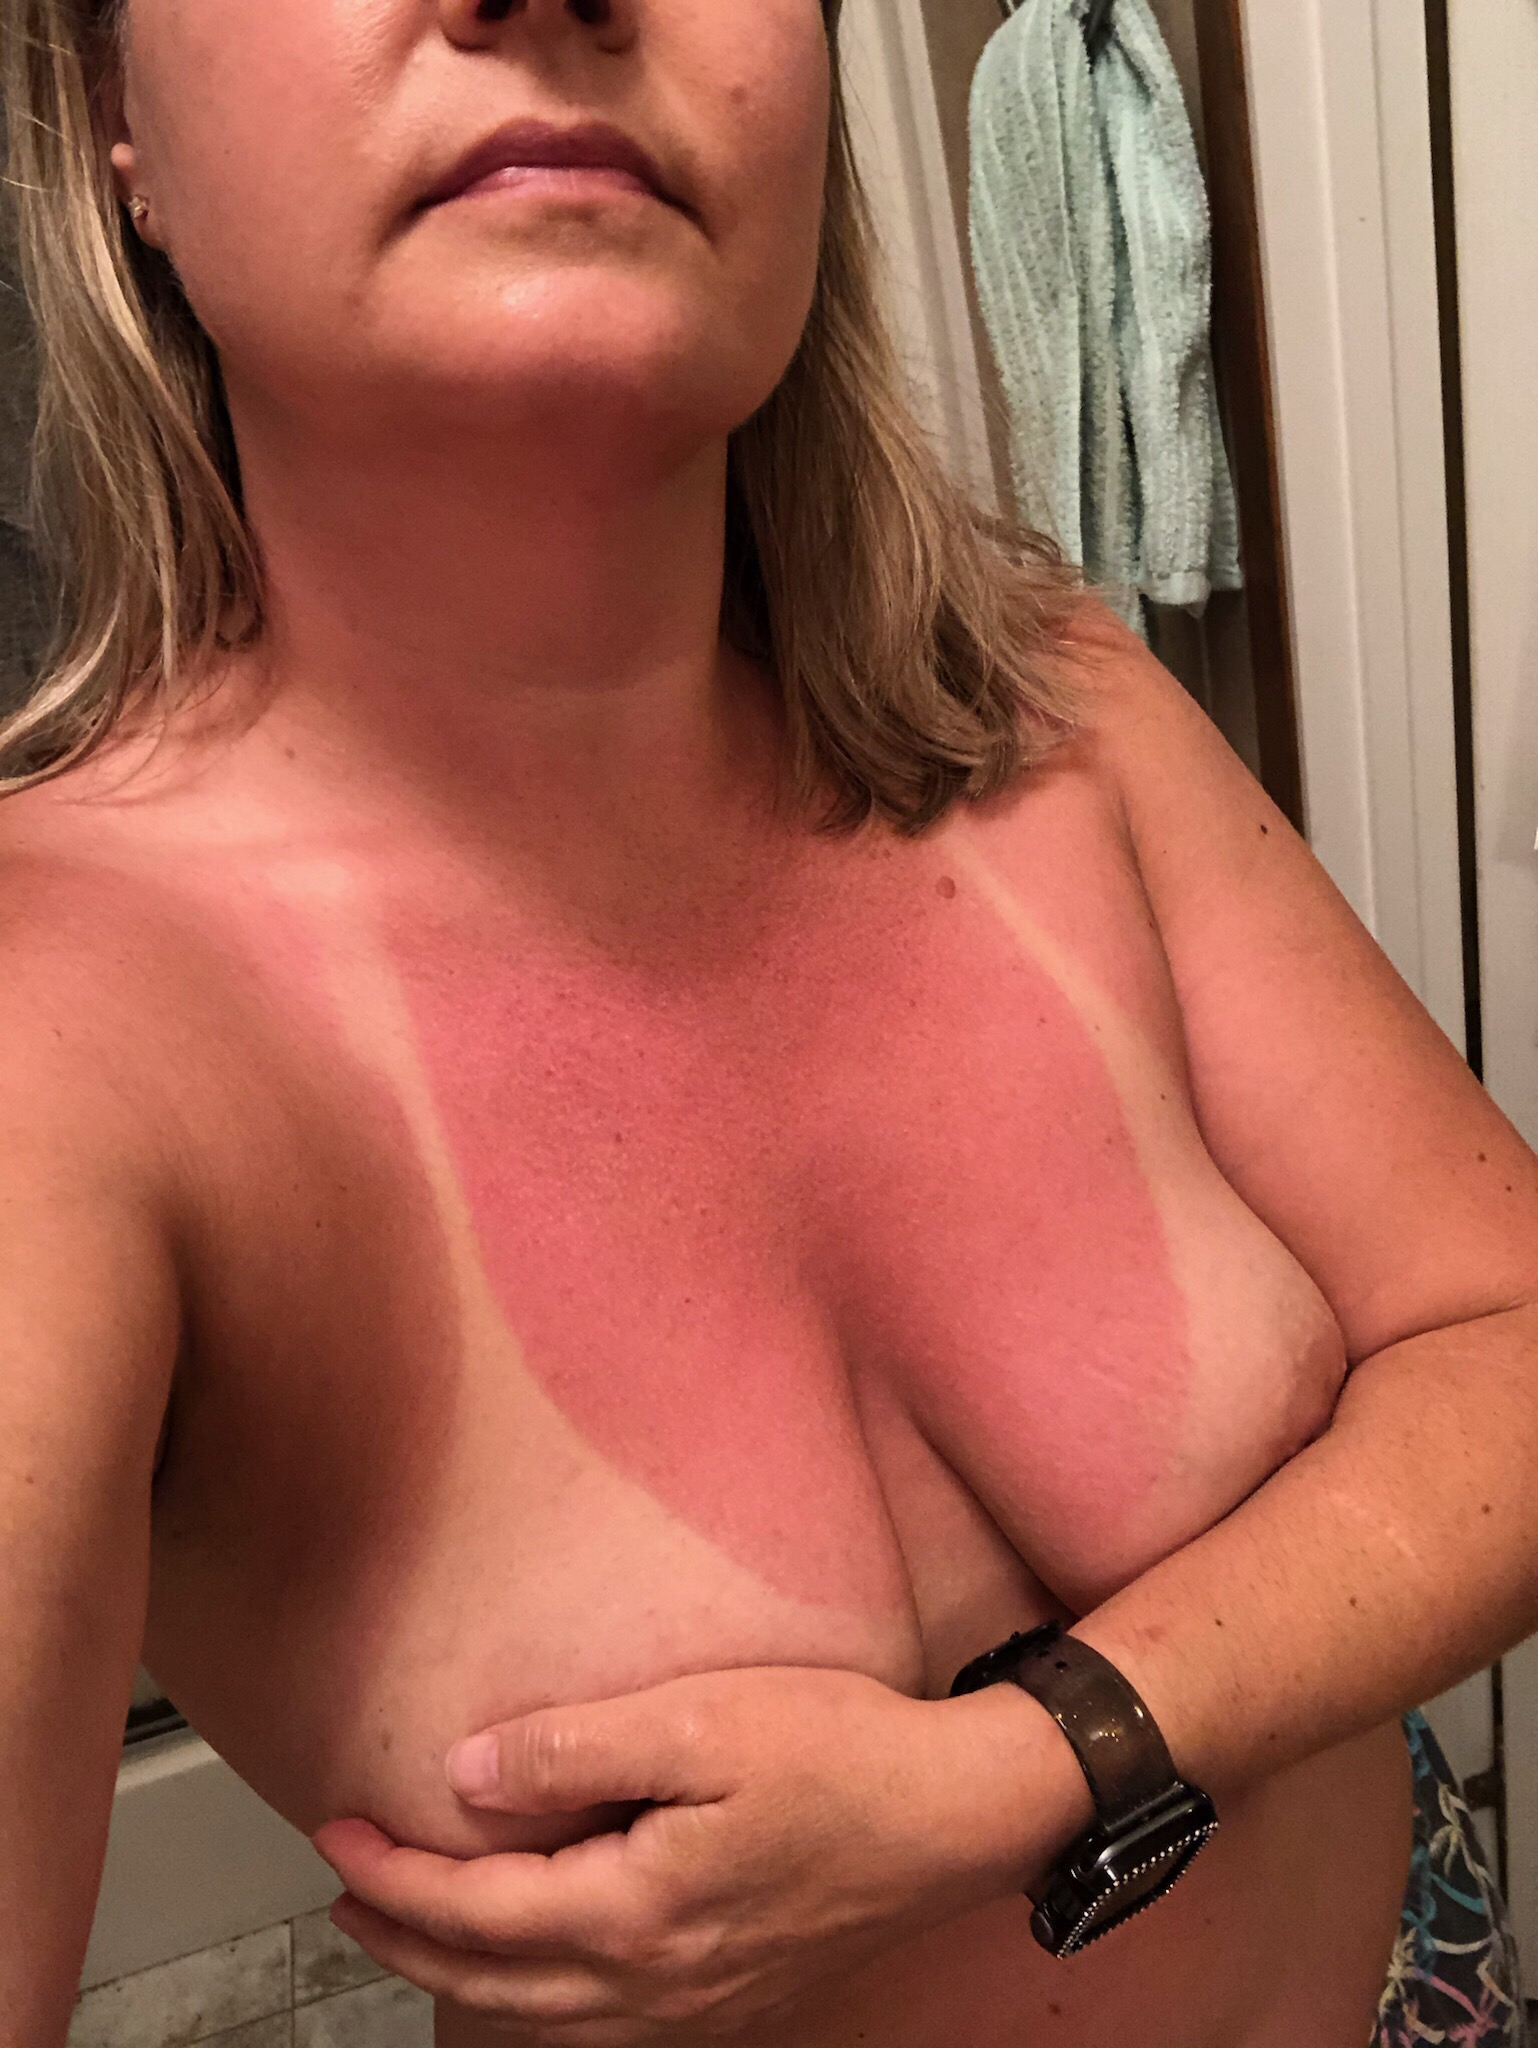 Is it too late for the sunscreen?